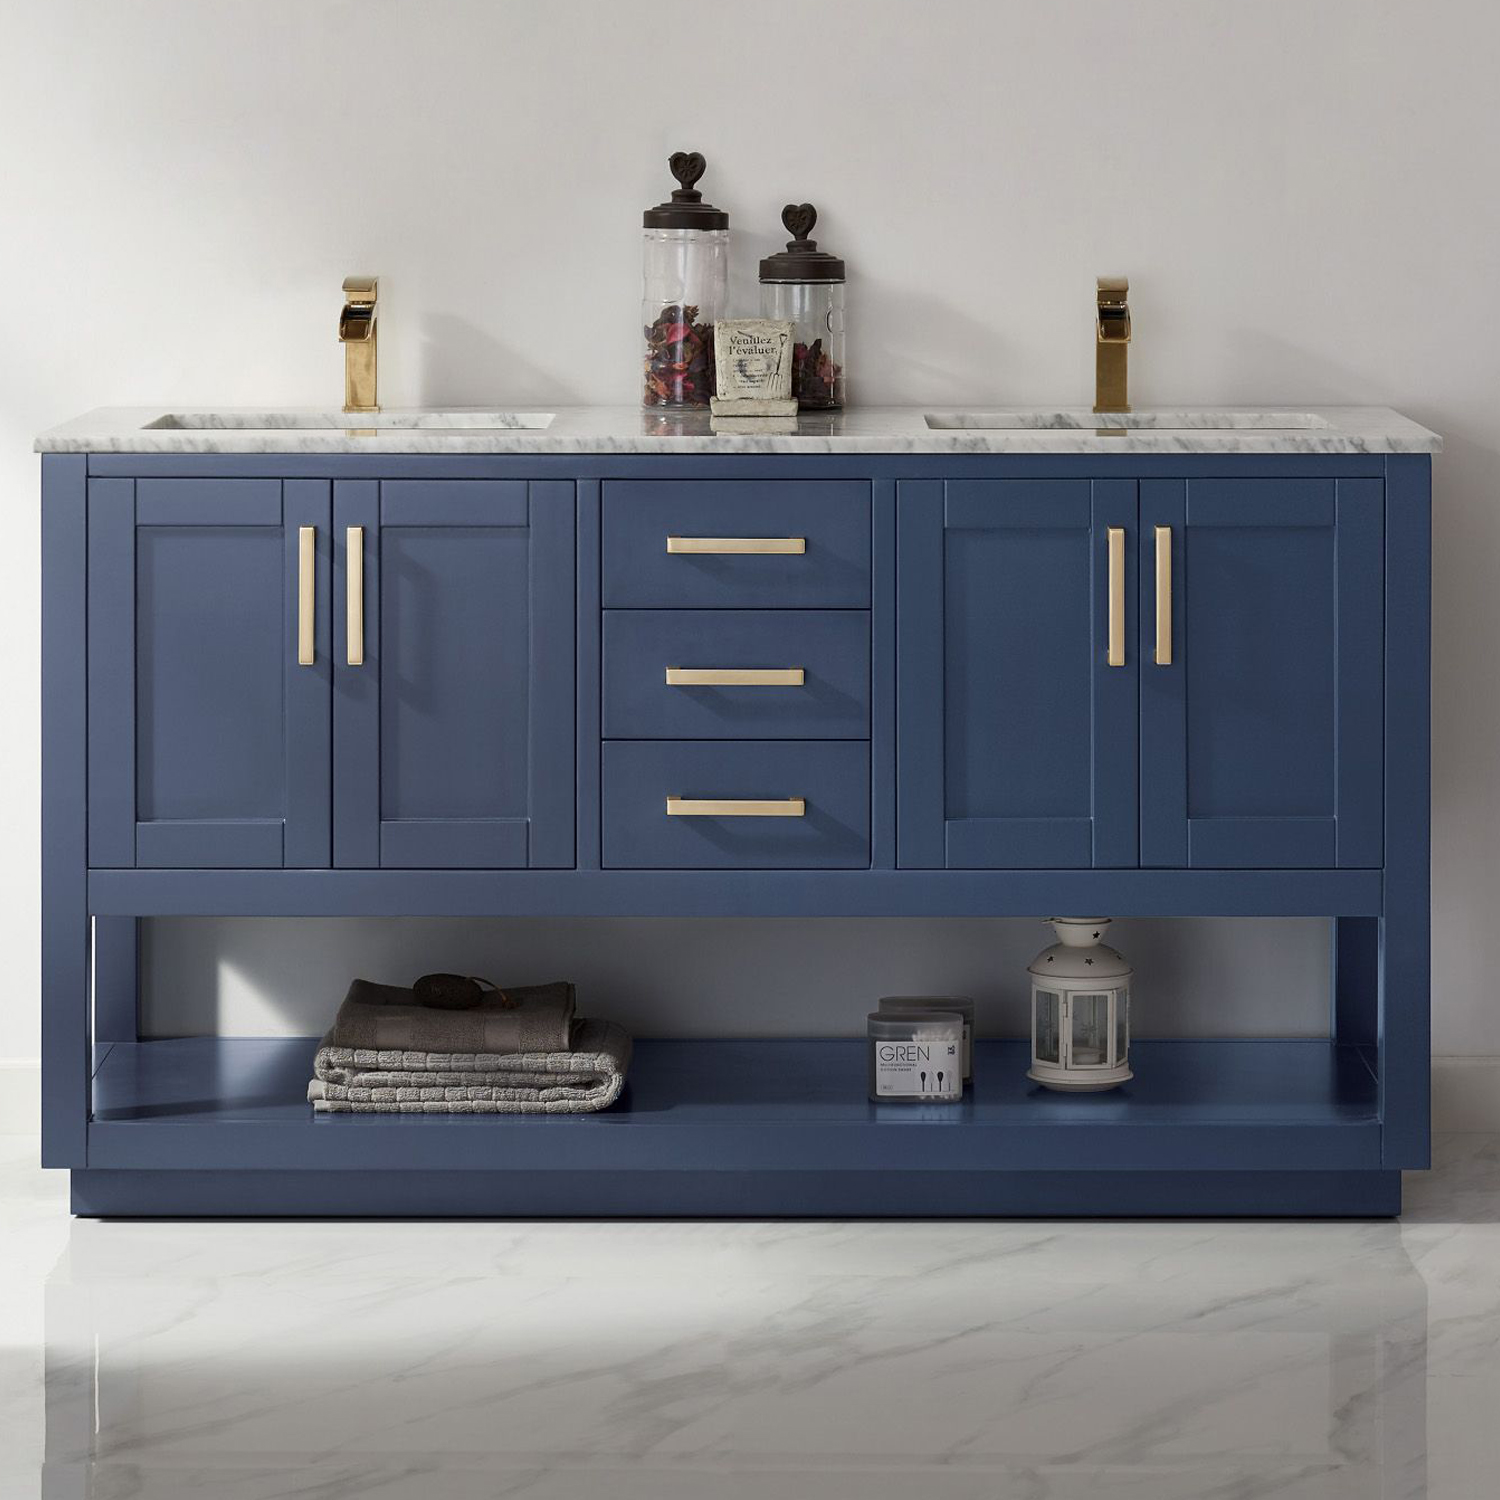 "Issac Edwards Collection 60"" Double Bathroom Vanity Set in Royal Blue and Carrara White Marble Countertop with Mirror Option"